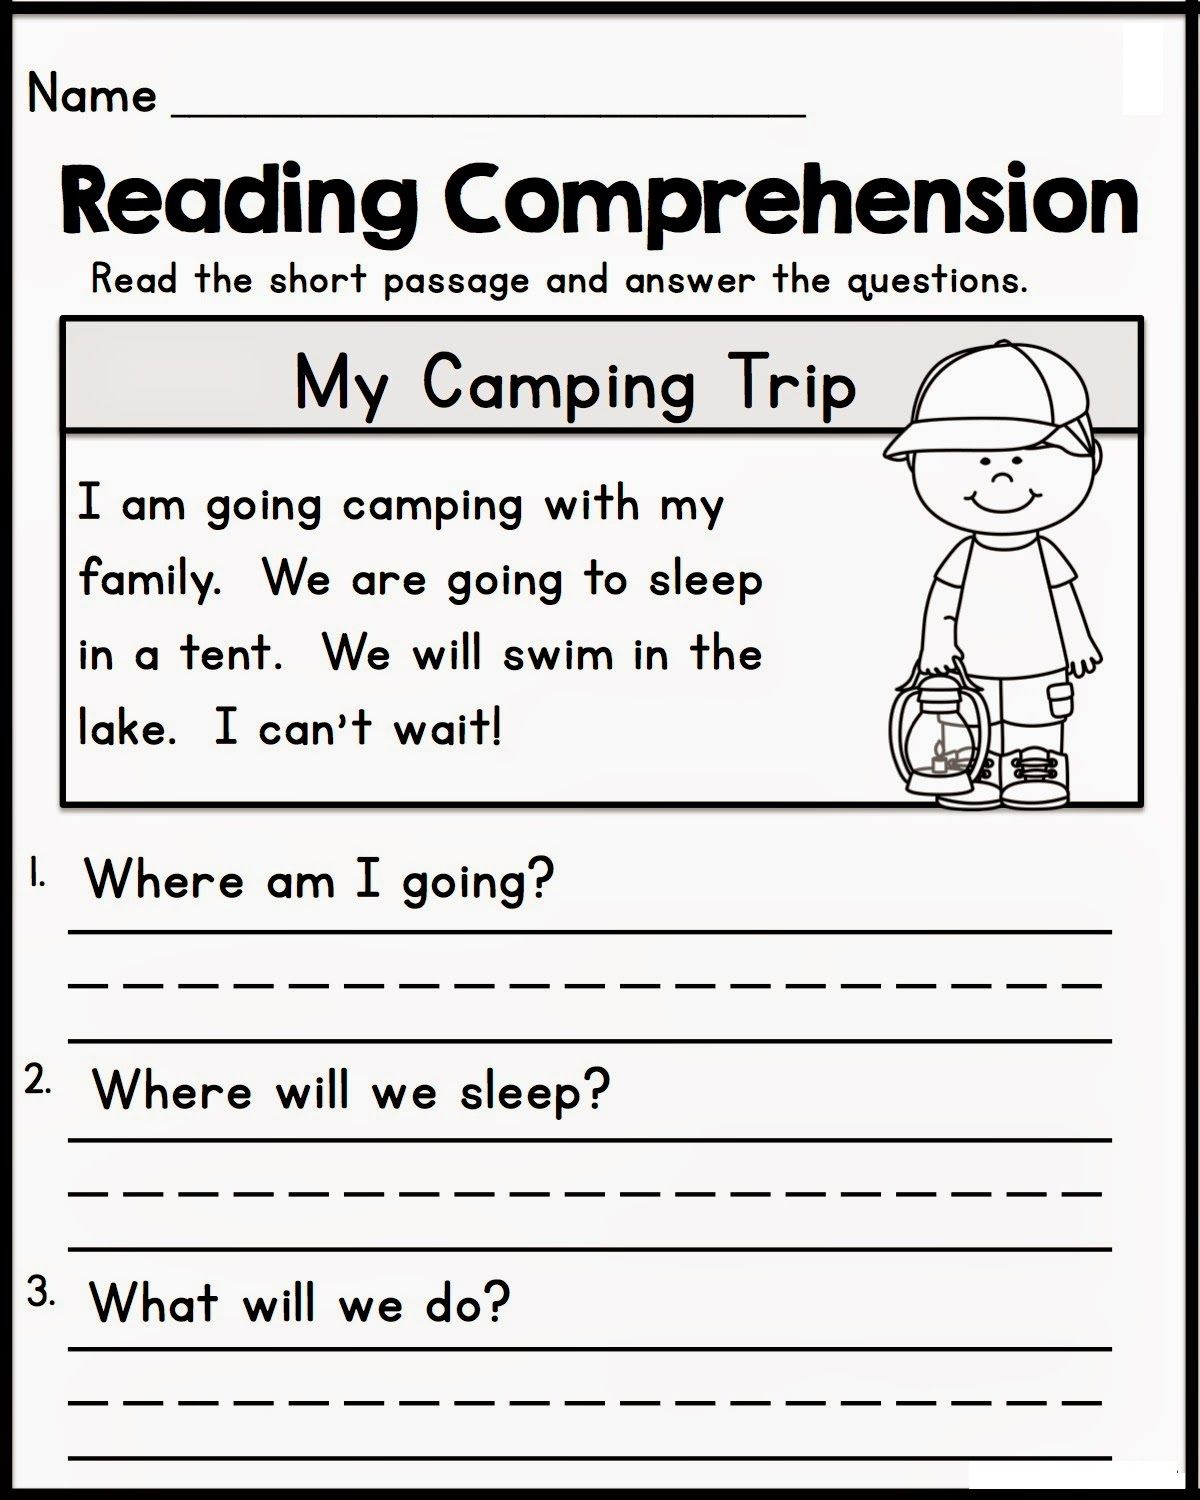 Printable Learning Reading Sheets For Kids